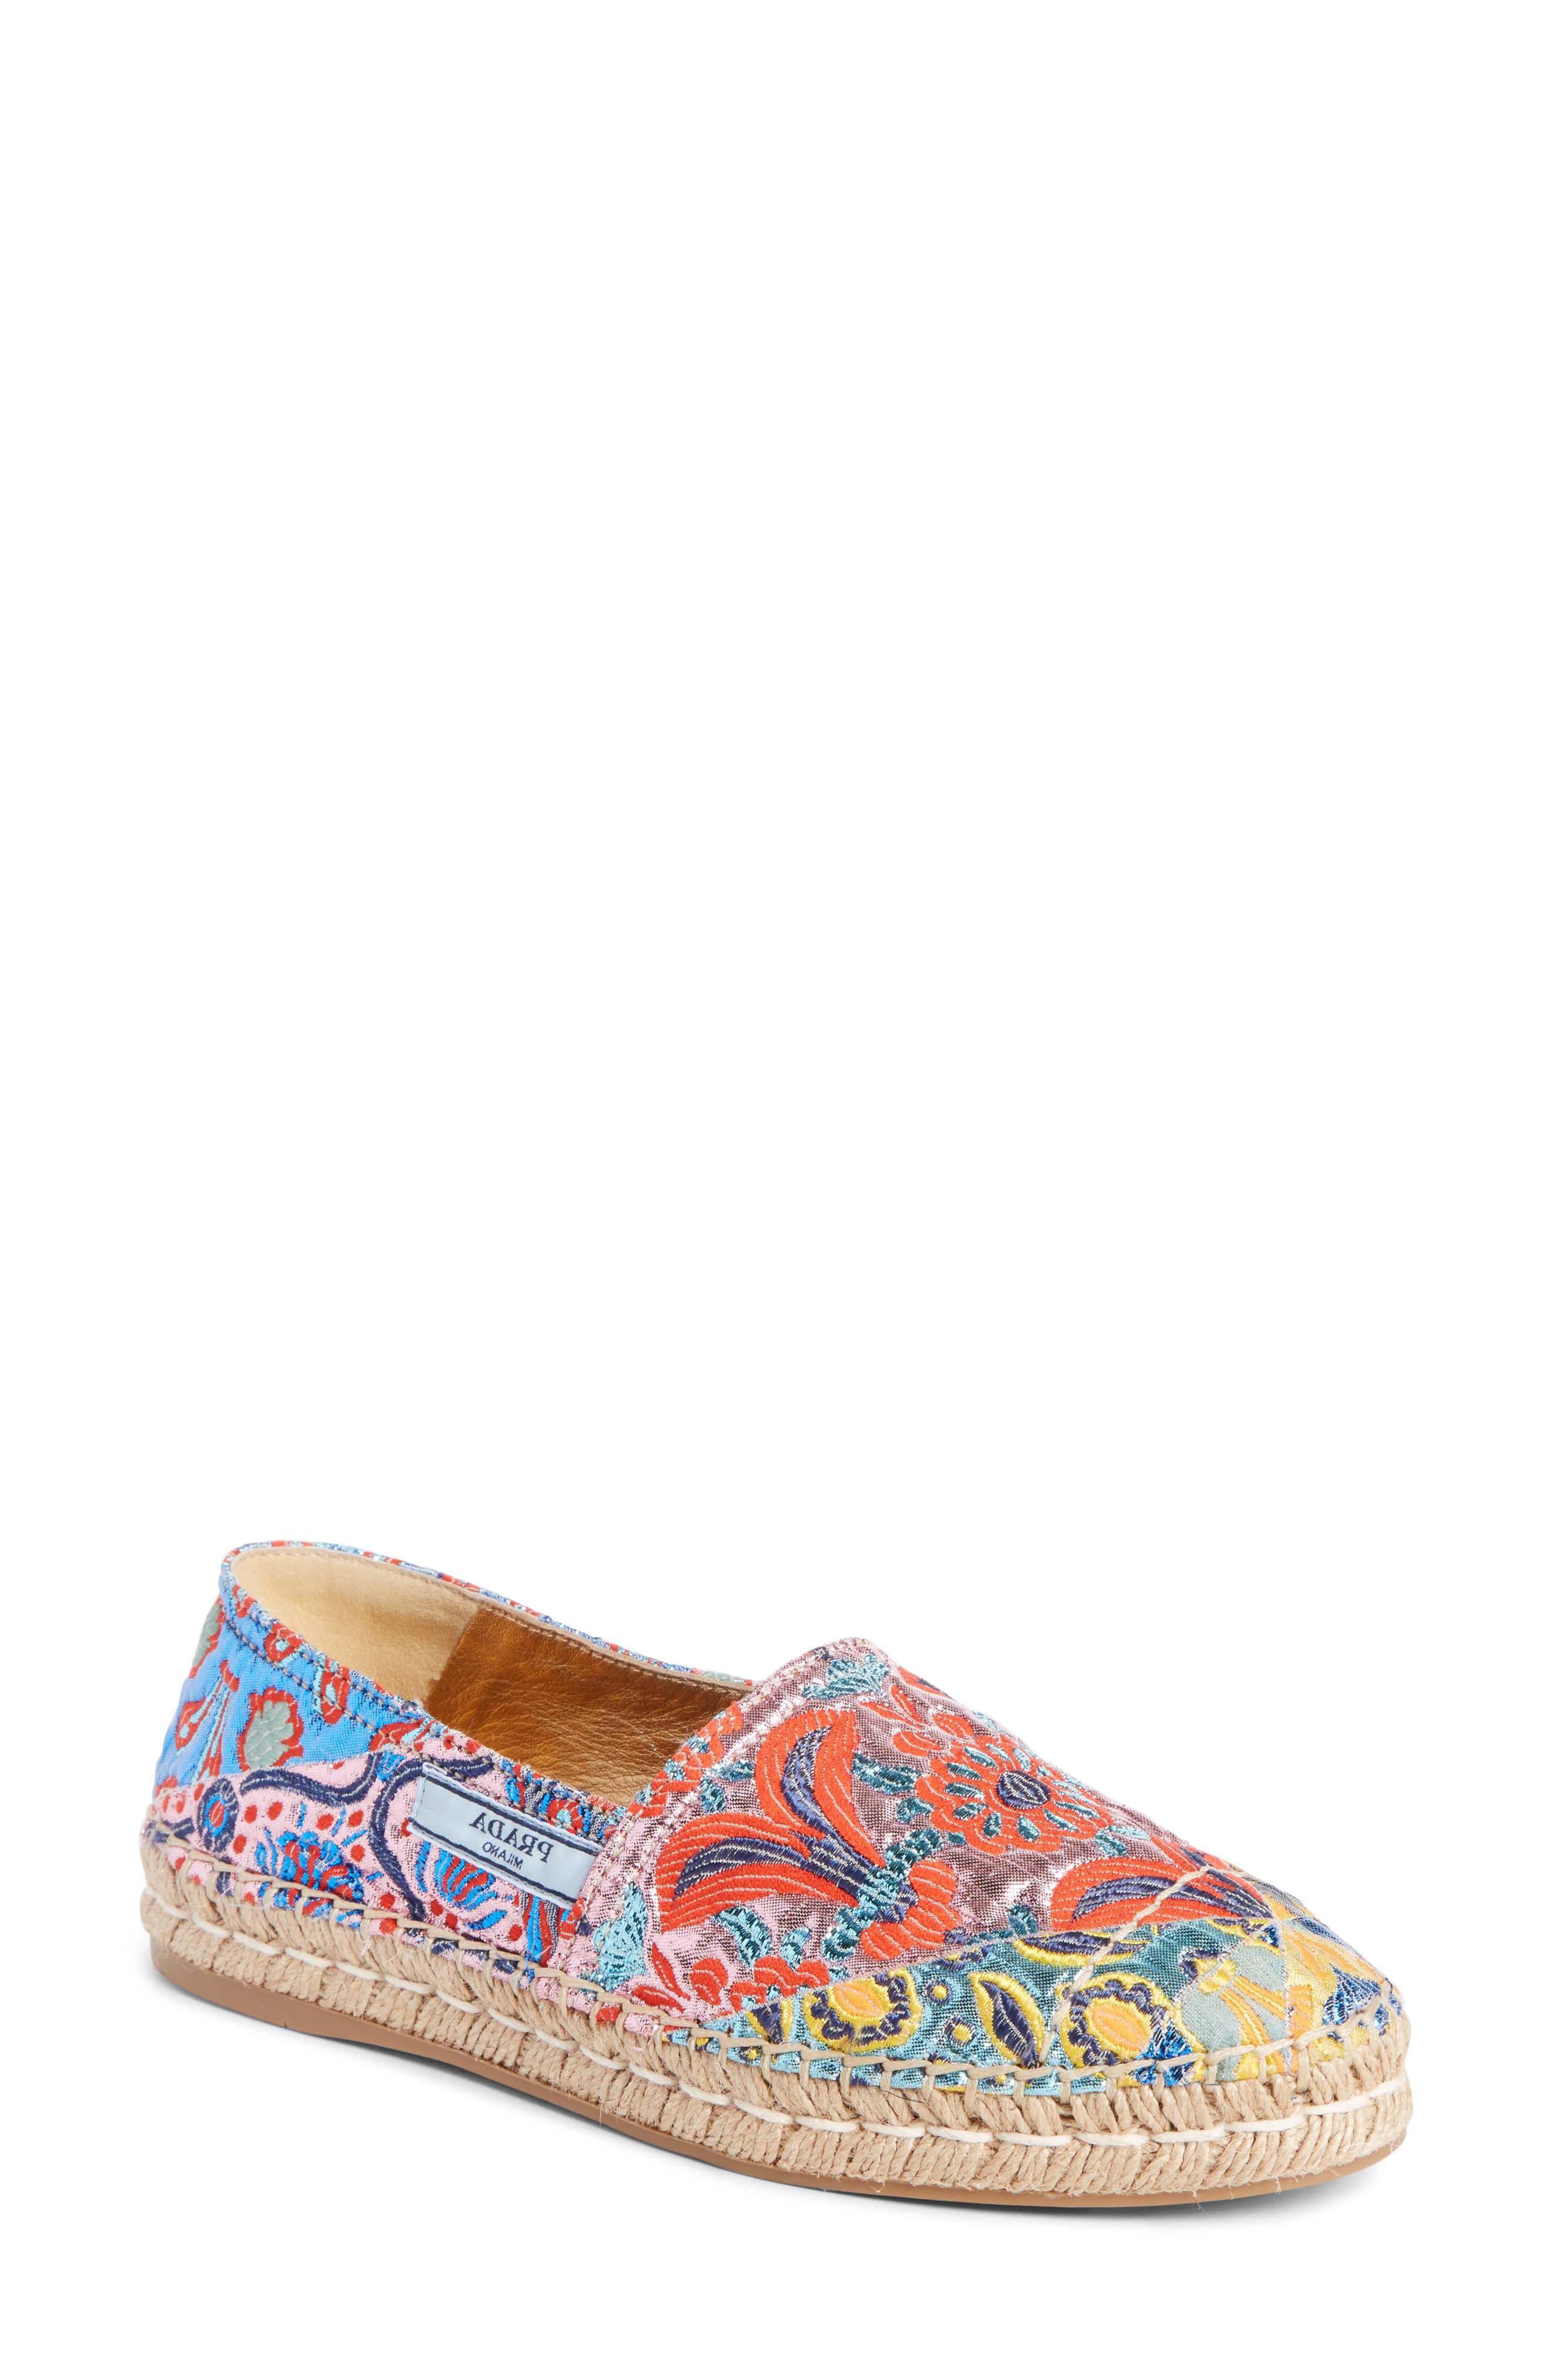 Floral Embroidered Espadrille Flat,                         Main,                         color, Pink Multi